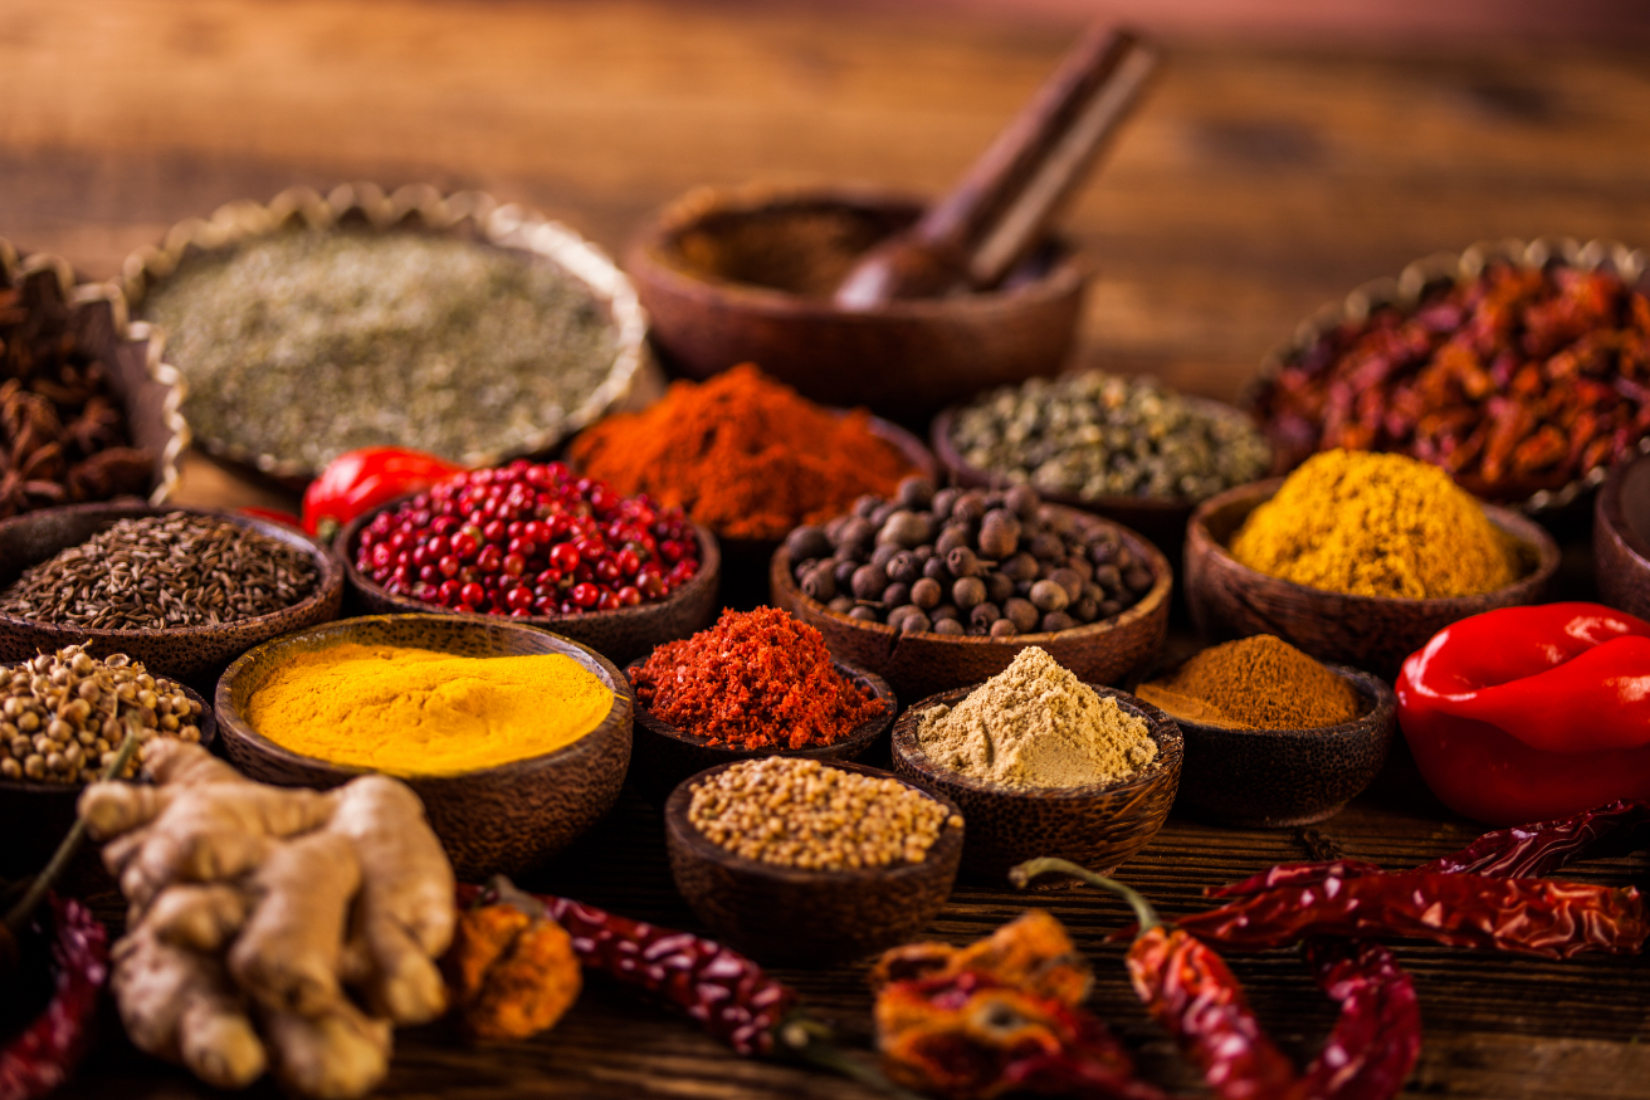 Asian Pride Spices, Blends and Seasonings